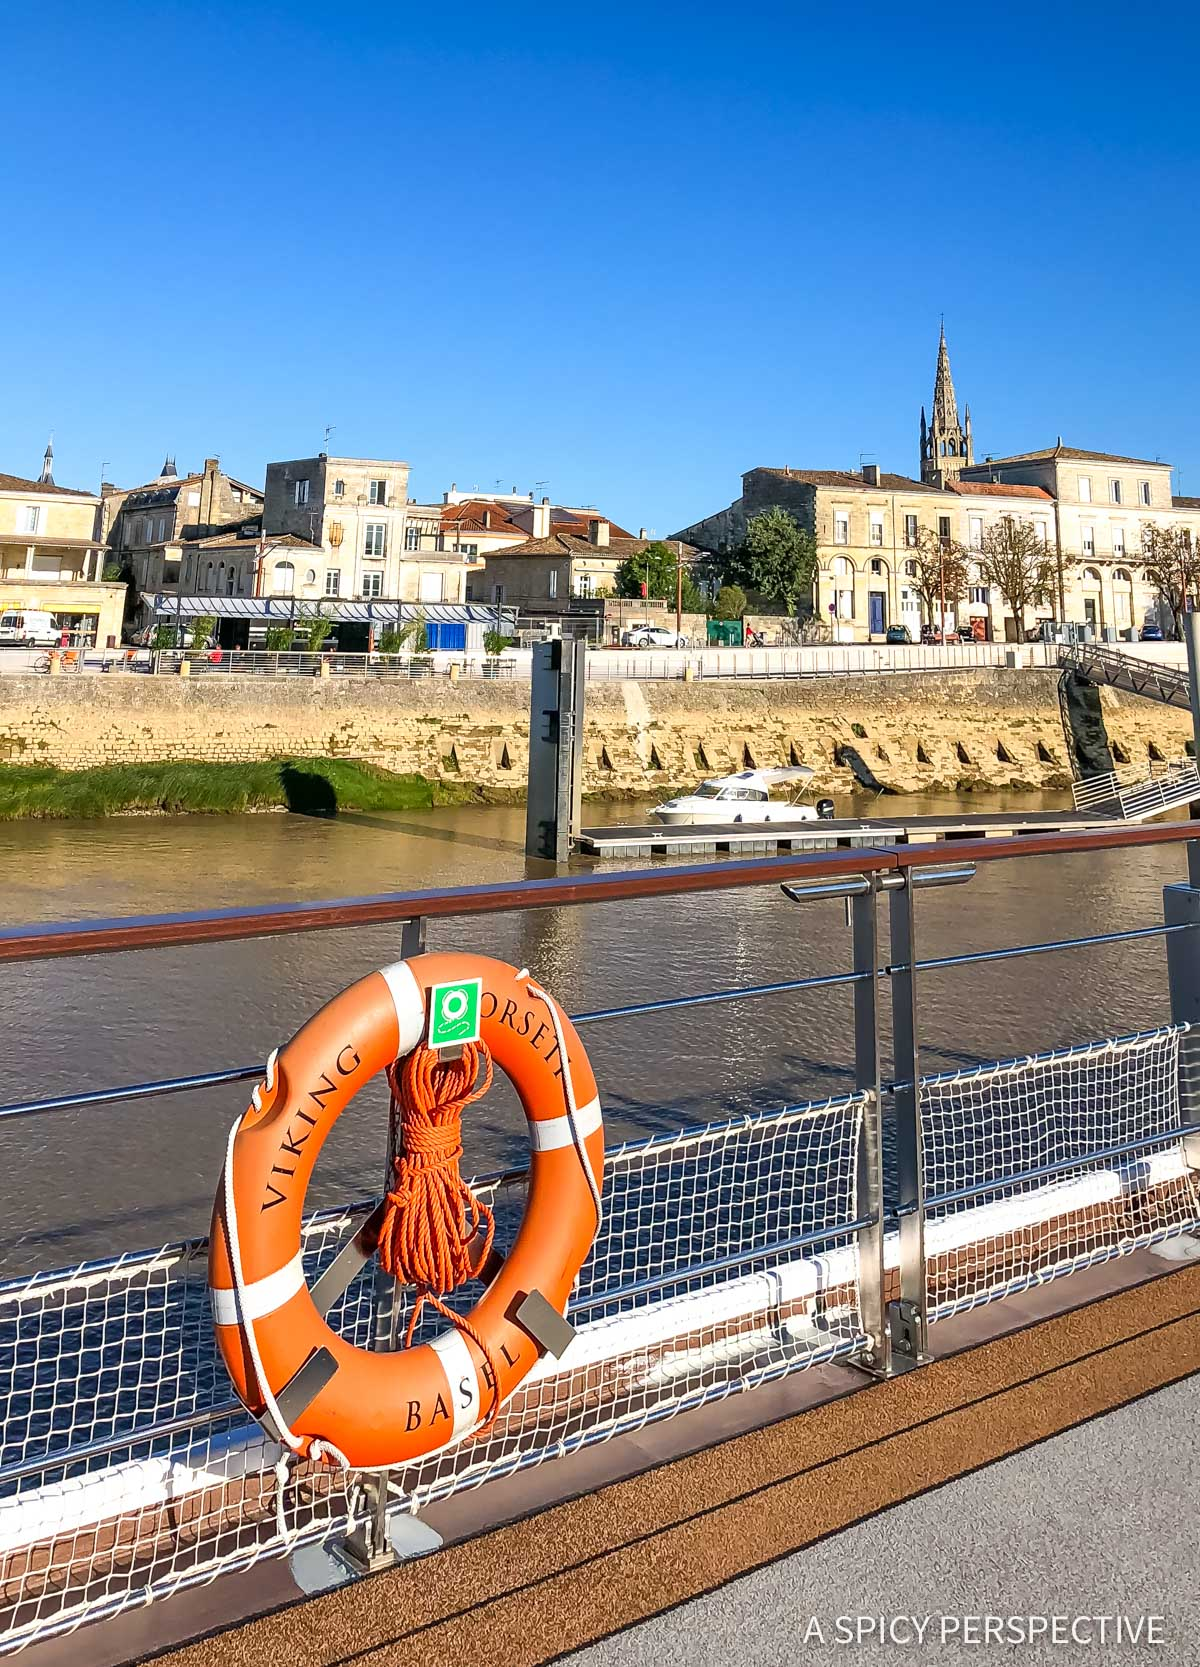 Bordeaux France Viking River Cruise #ASpicyPerspective #Travel